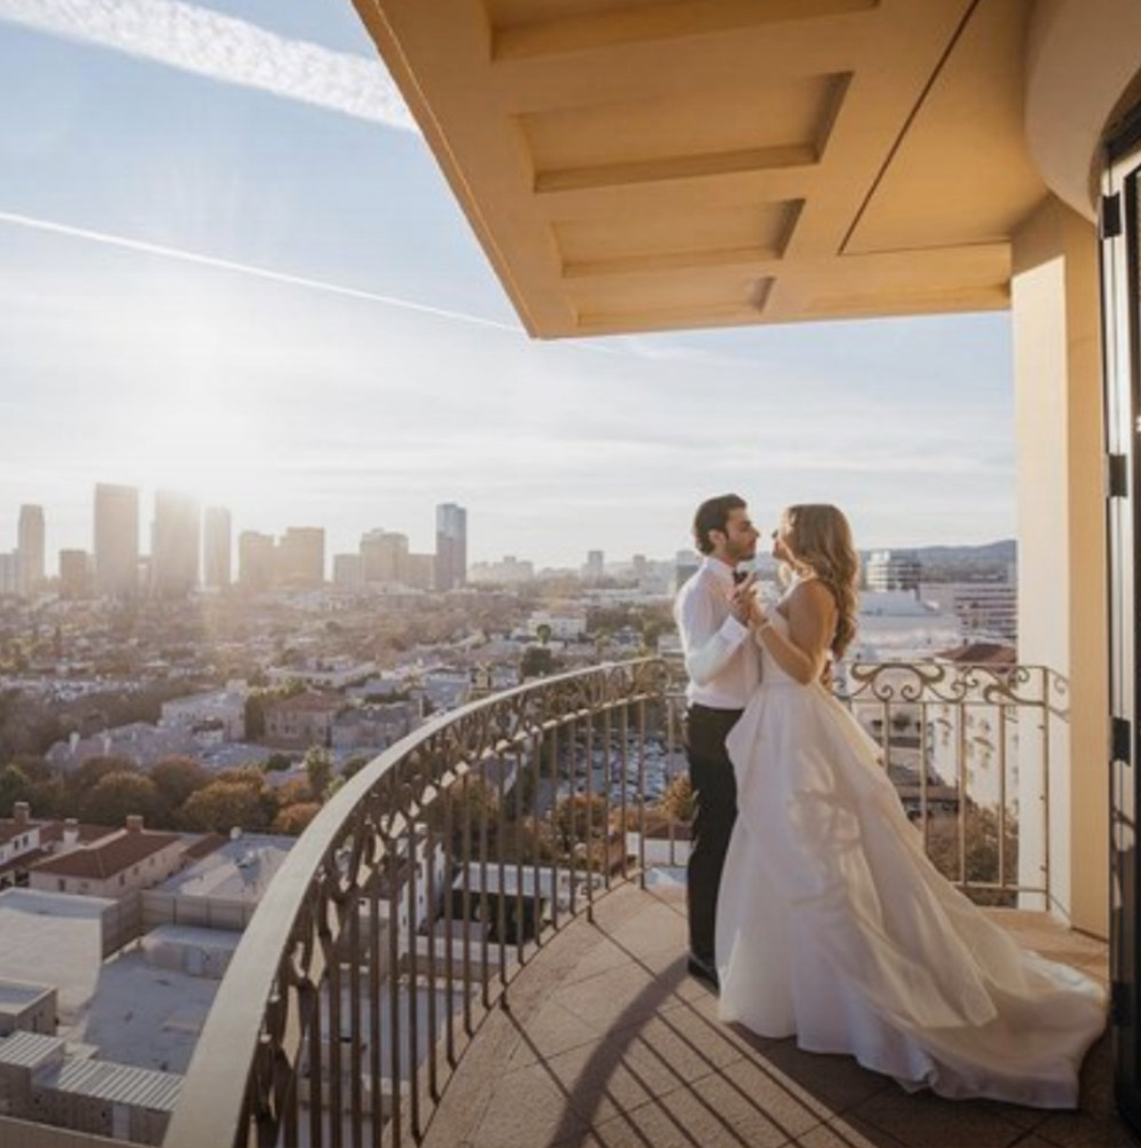 A couple dances on a balcony of the Four Seasons Beverly Wilshire Hotel in Beverly Hills, CA. Instagram photo by @dmitry_shumanev